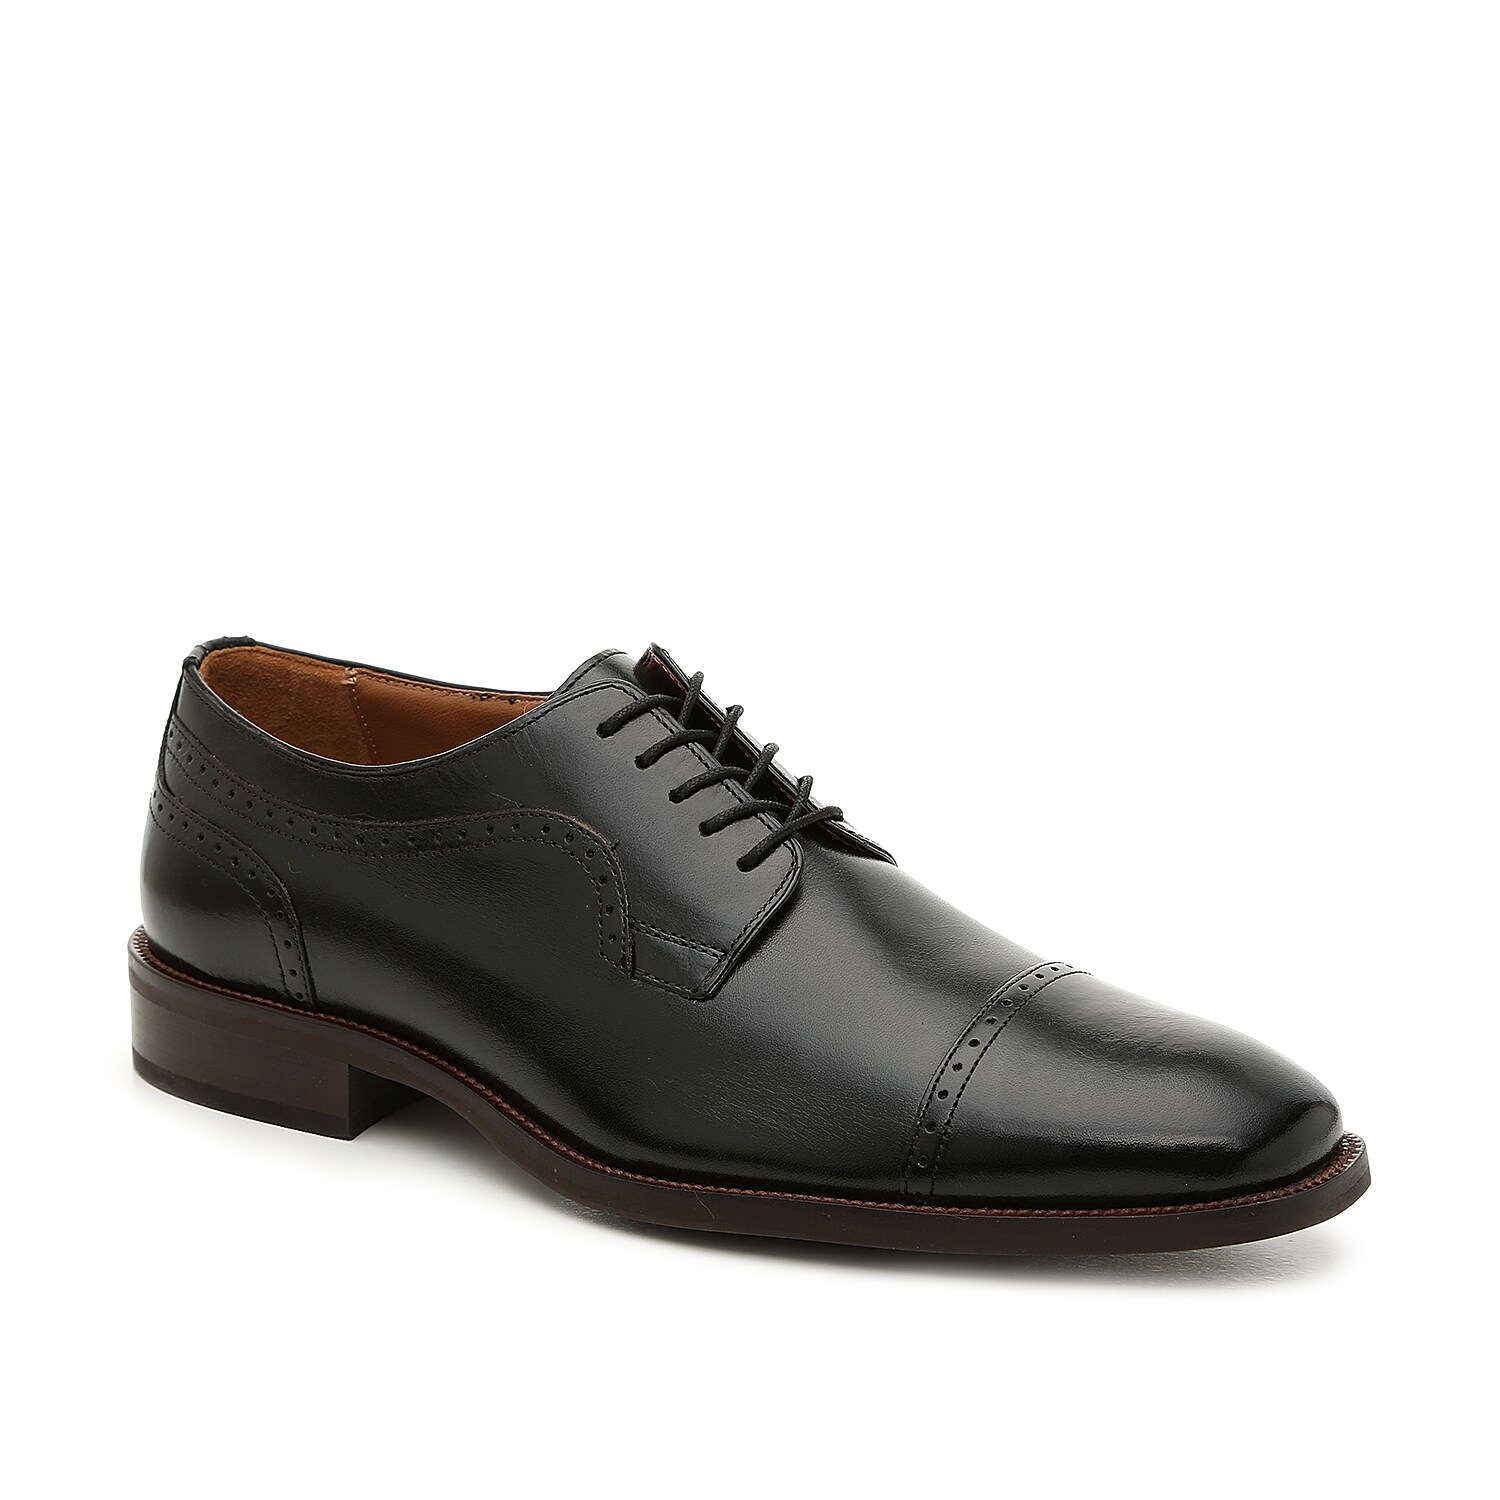 The Everett oxford from Johnston & Murphy is the perfect finishing touch to a day at the office or a night on the town. These leather cap toes feature classic brogue detailing and are finished with a square toe for modern flair.